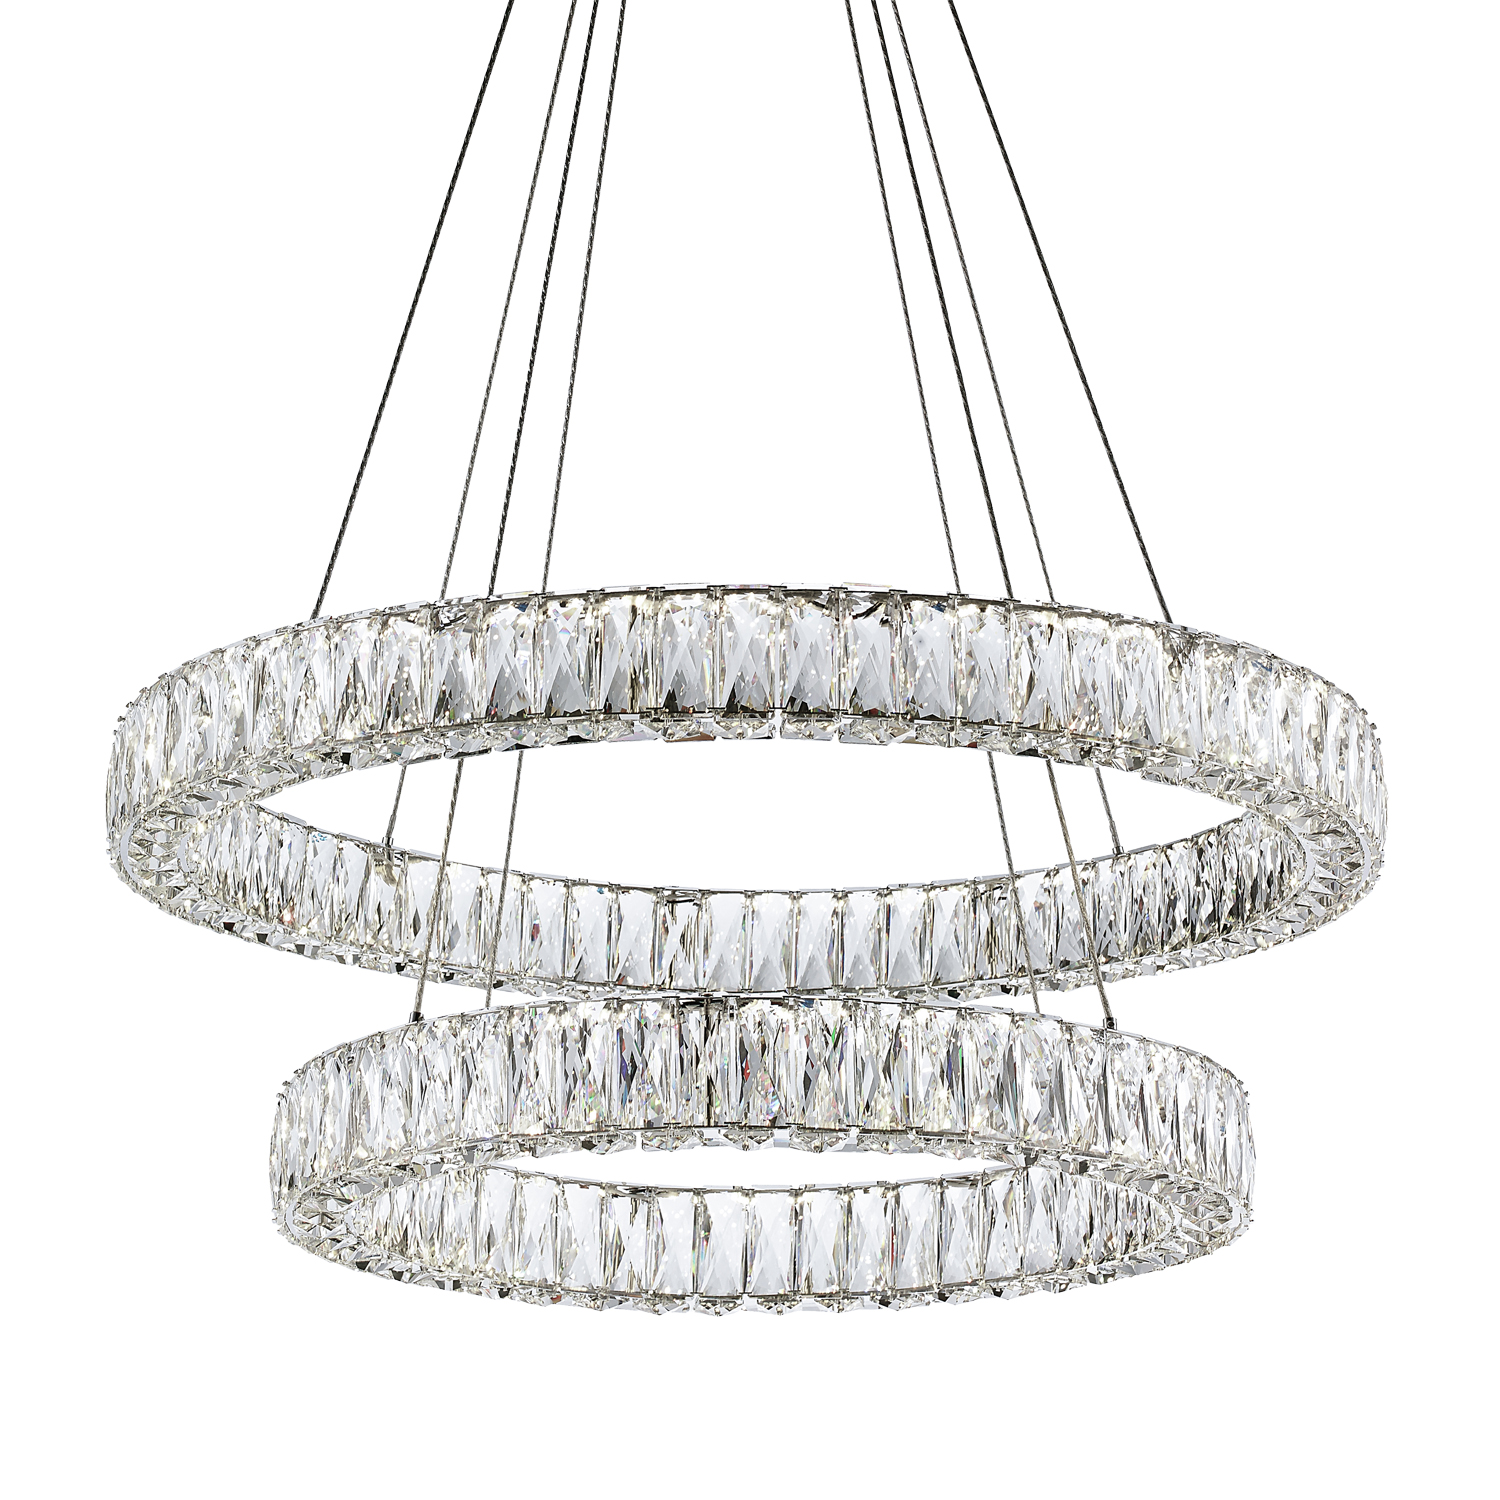 Solaris Two Ring Chandelier by Kuzco Lighting  a03eb31ed8